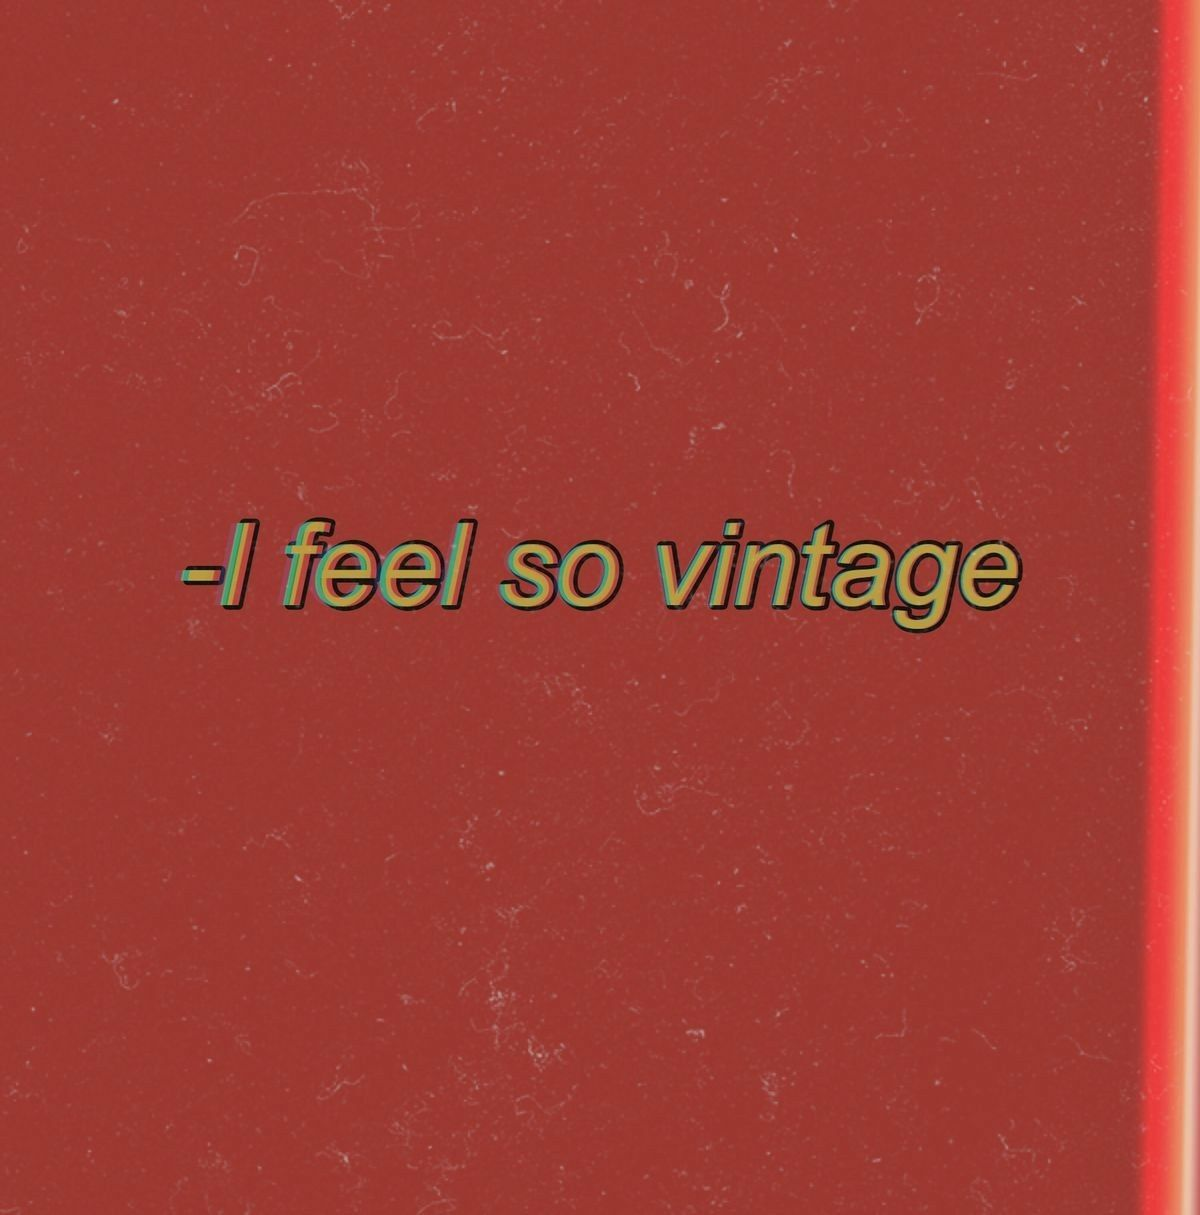 Wall Paper Aesthetic Vintage 90s 46 Super Ideas In 2020 Aesthetic Vintage Red Aesthetic Aesthetic Collage